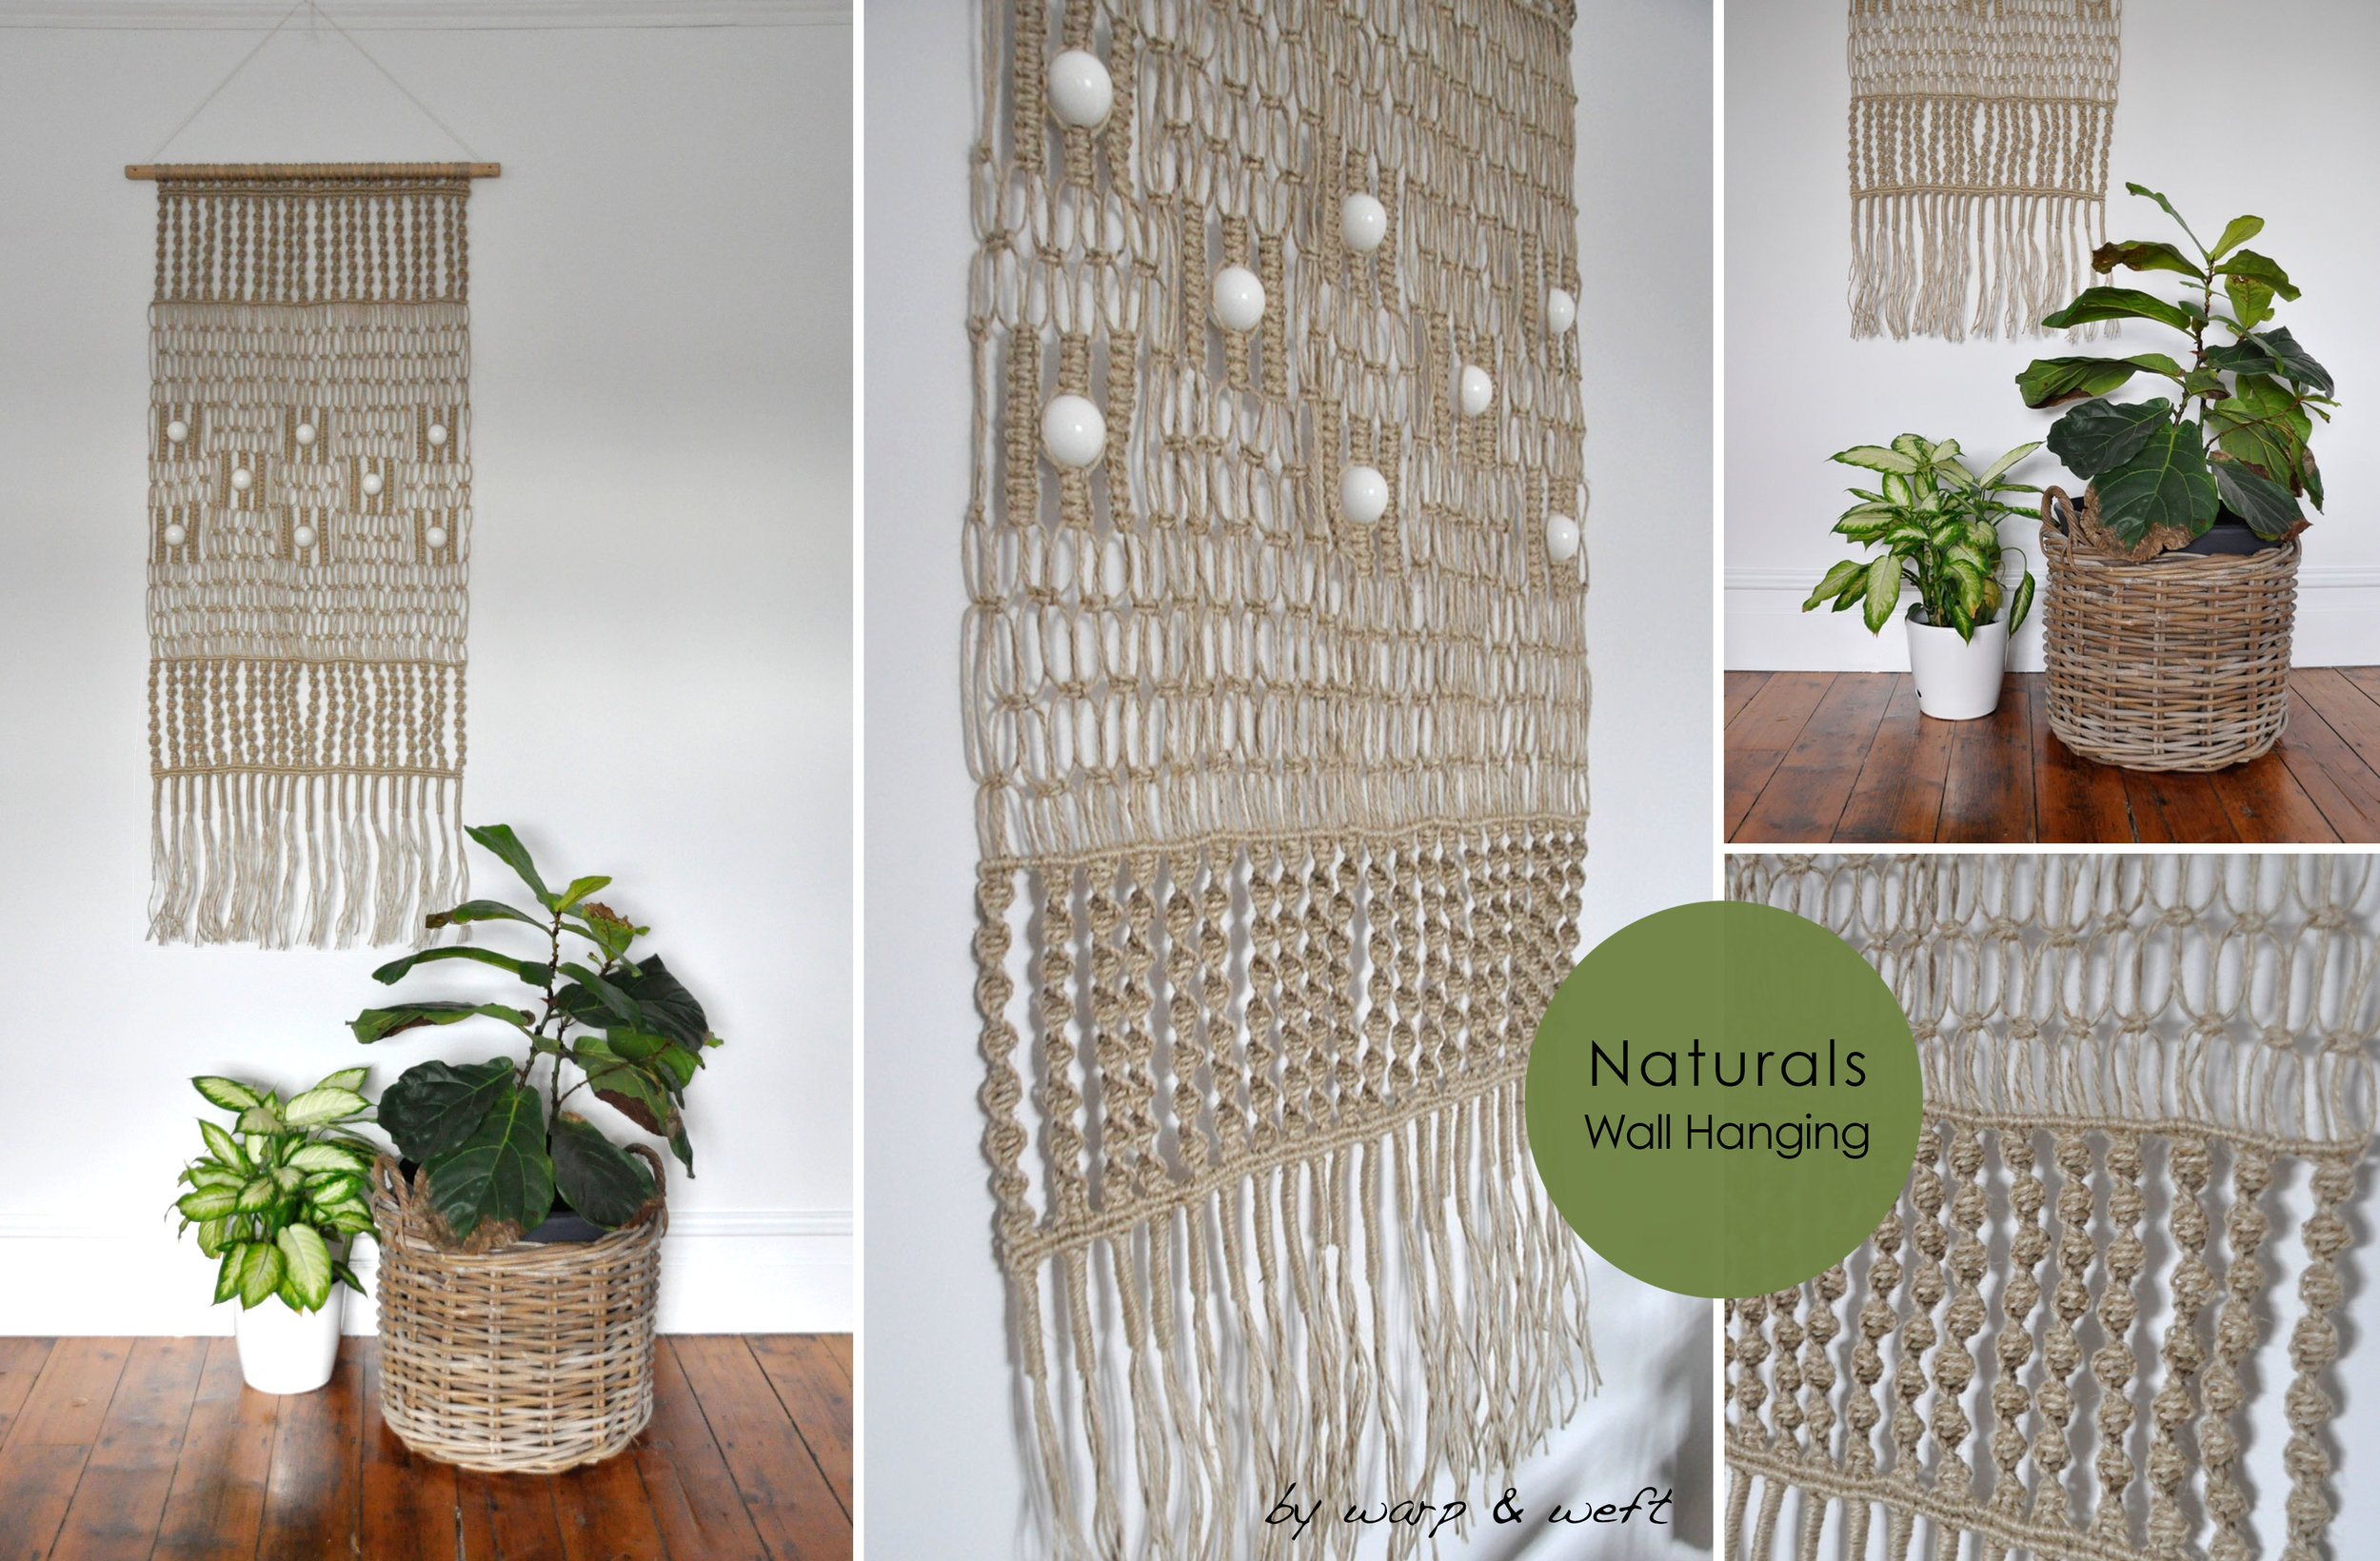 Classic 70's Macrame made modern. Reinventing the retro version of the past with a modern fresh twist.  This piece was design using a range a traditional Macrame knots. Each piece is hand made and designed from scratch. Not one piece is a like which makes the product more bespoke, a one off. This style comes in a 'Natural Jute' for a more earthy style interior. Each piece is made to order. Please allow 3 weeks for deliver